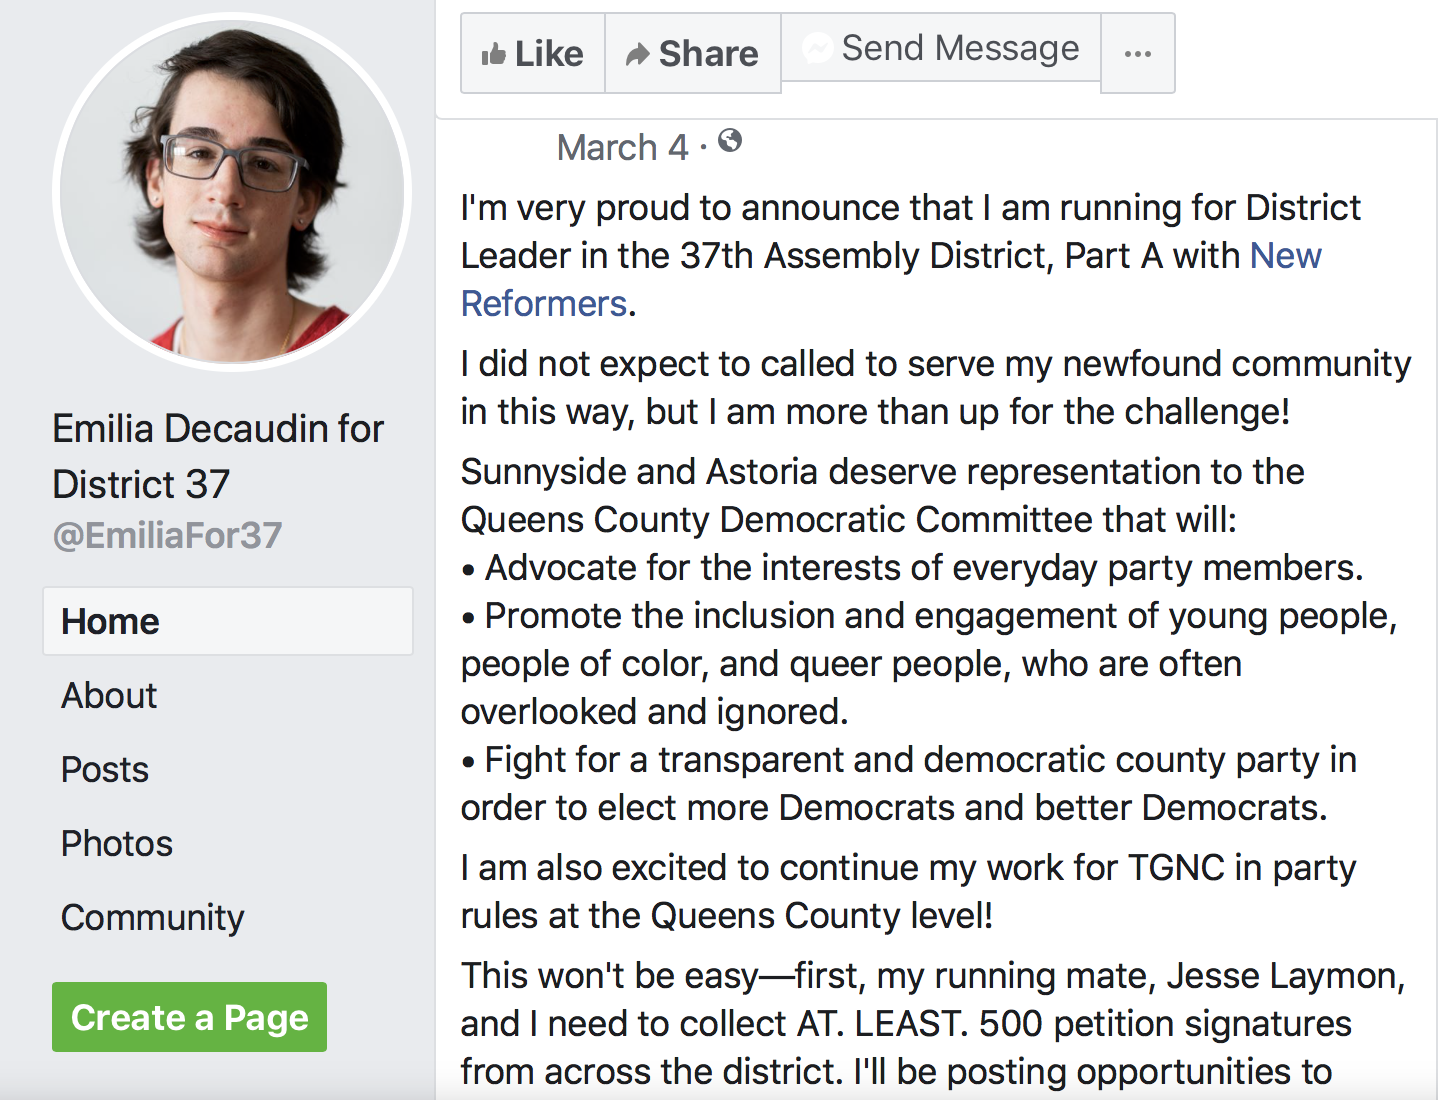 Emilia Decaudin Female District Leader, March 4, Facebook